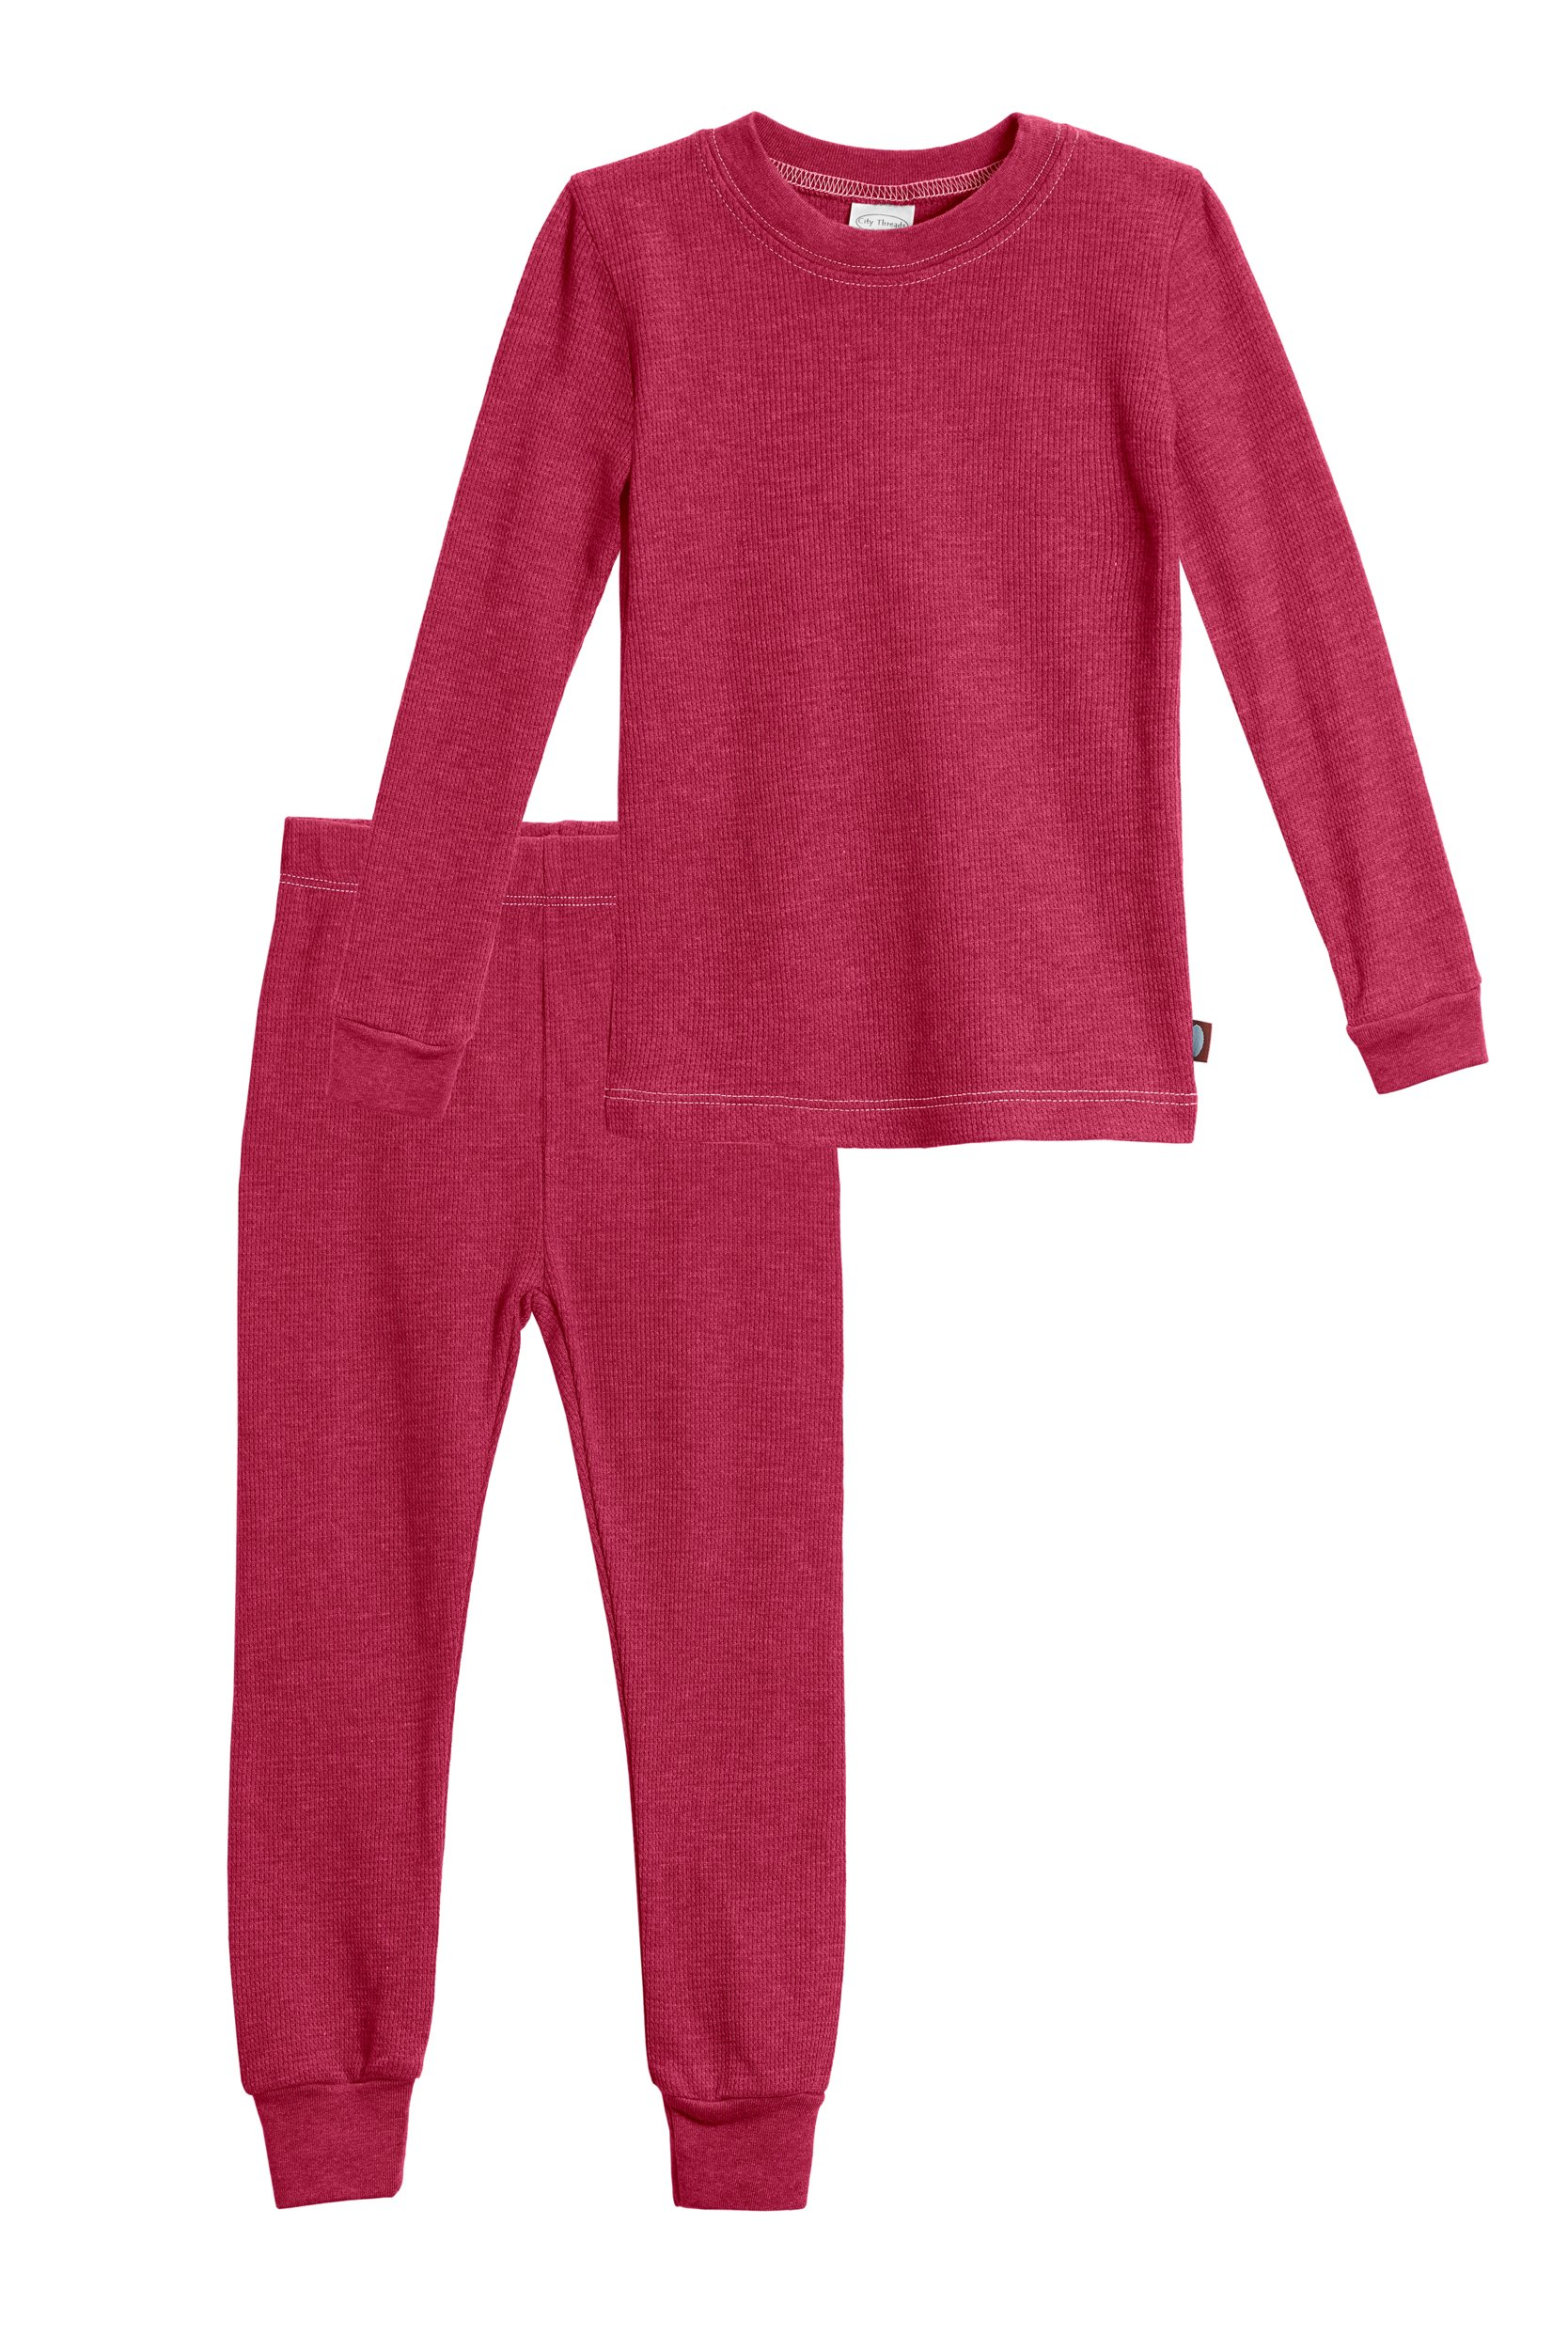 City Threads Big Girls Thermal Underwear Set Perfect for Sensitive Skin SPD Sensory Friendly, Red- 12 by City Threads